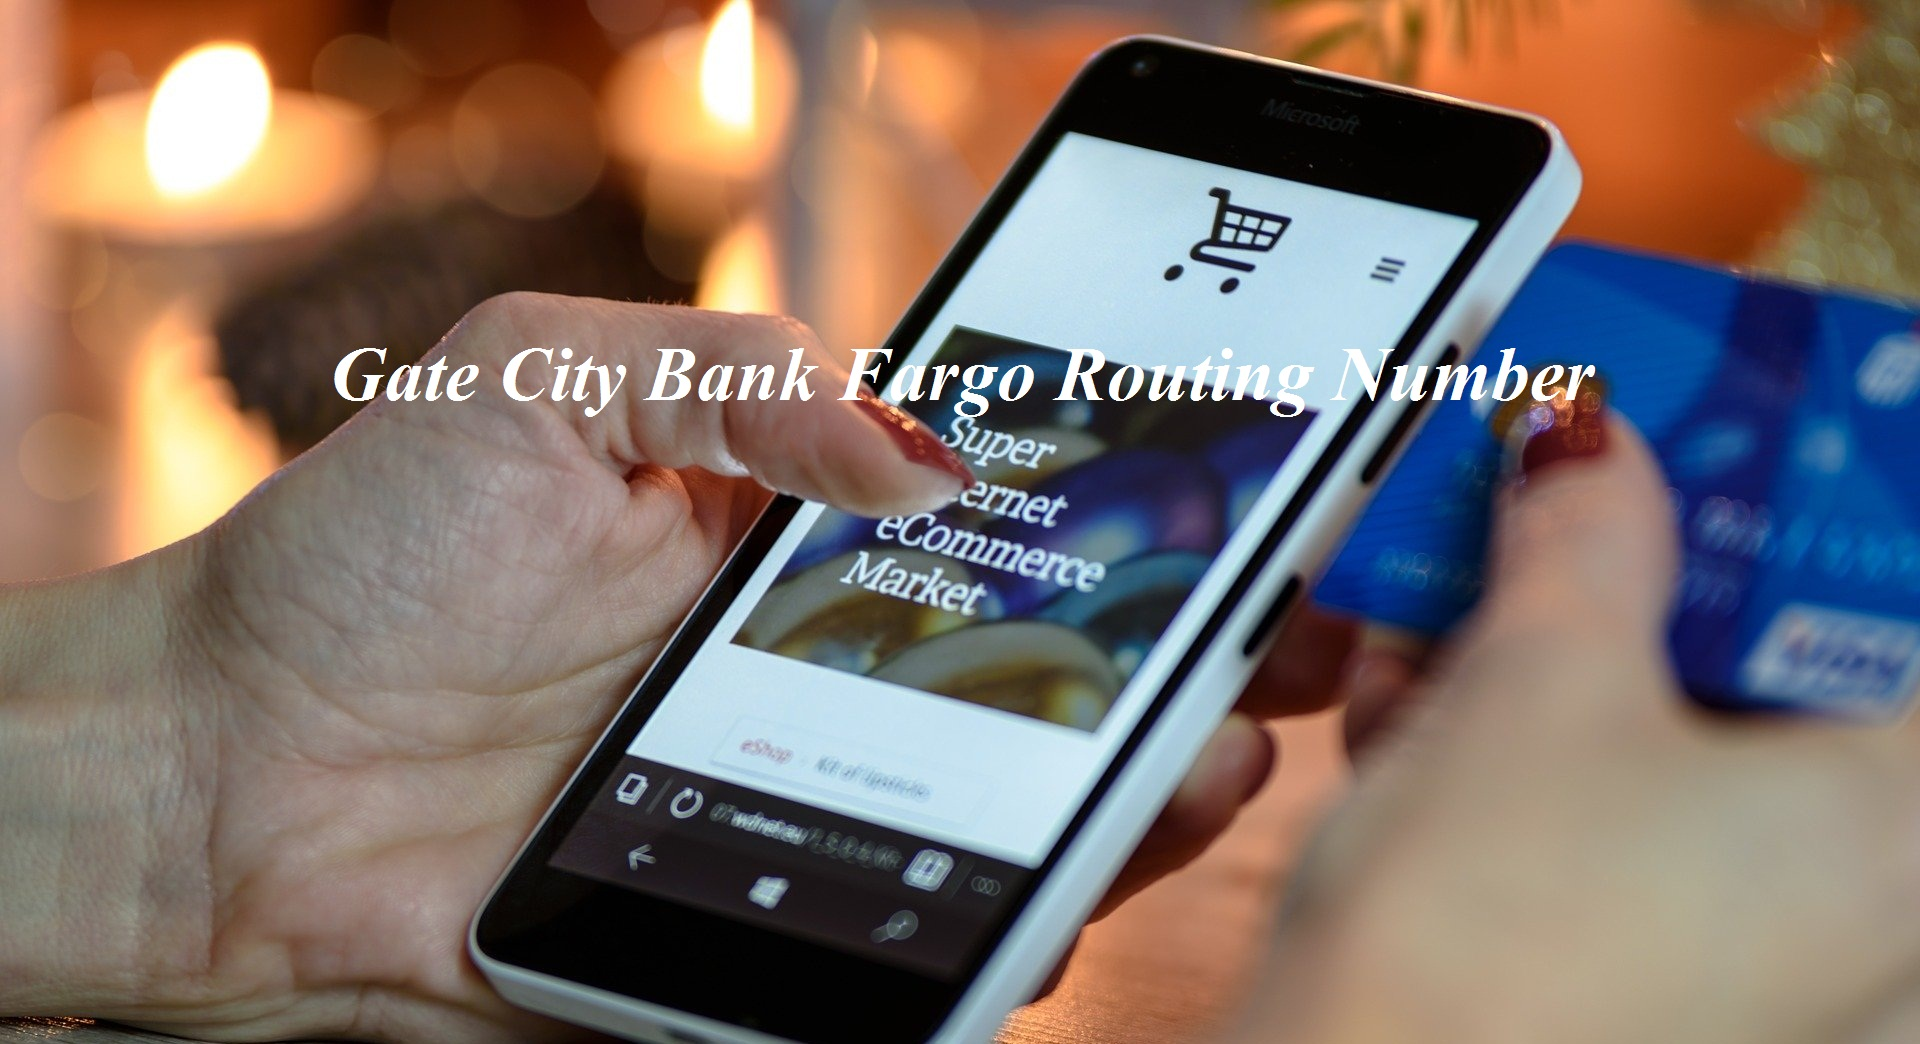 Gate City Bank Fargo Routing Number